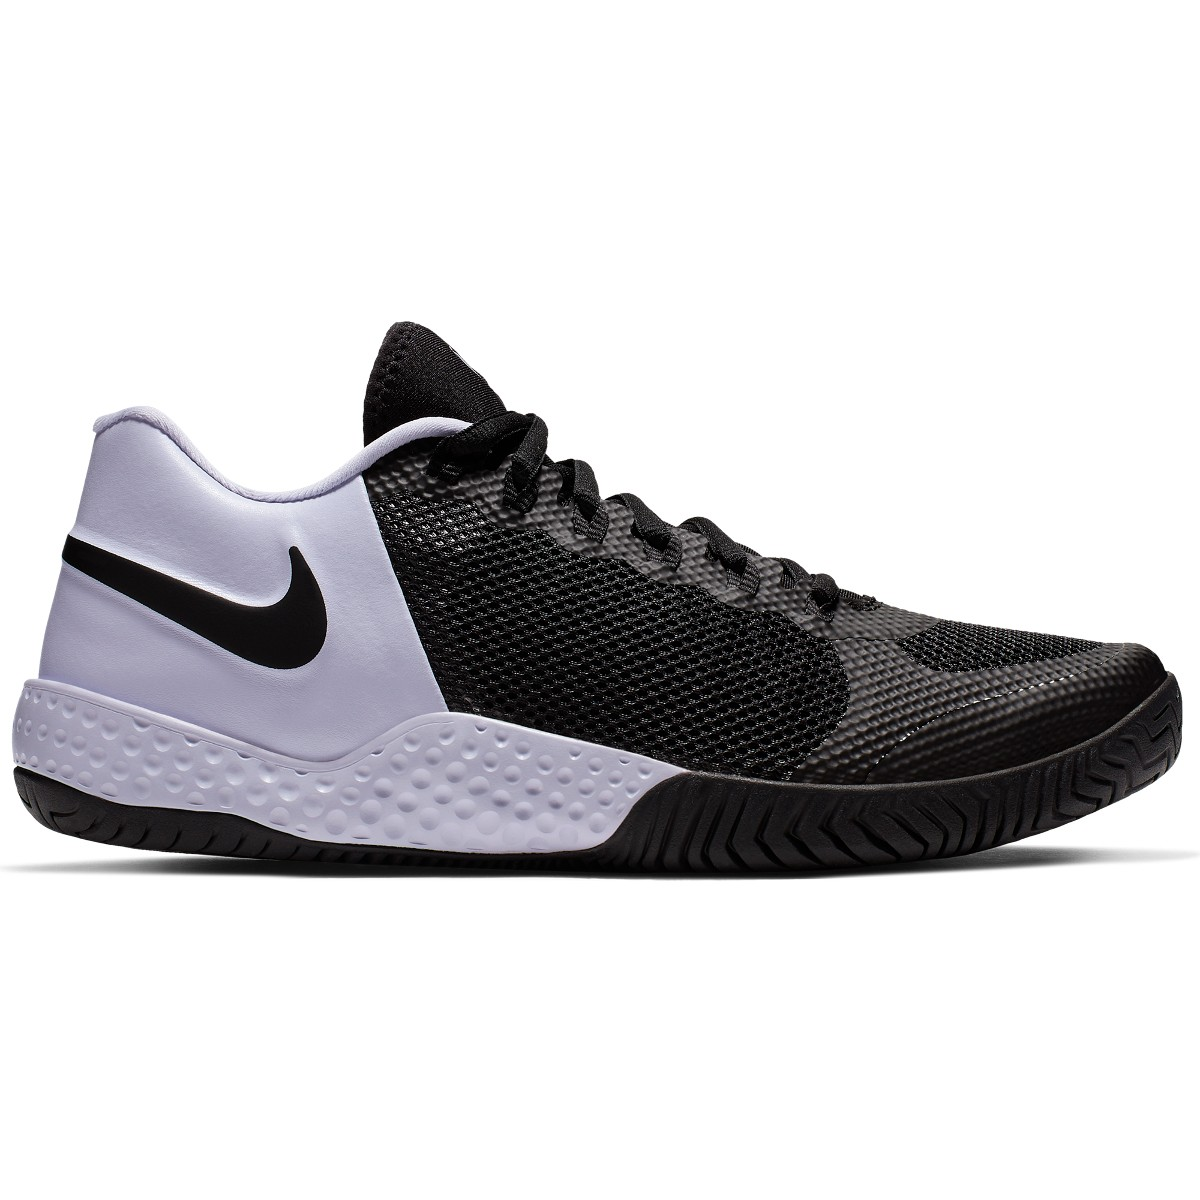 CHAUSSURES NIKE FEMME FLARE 2 TOUTES SURFACES